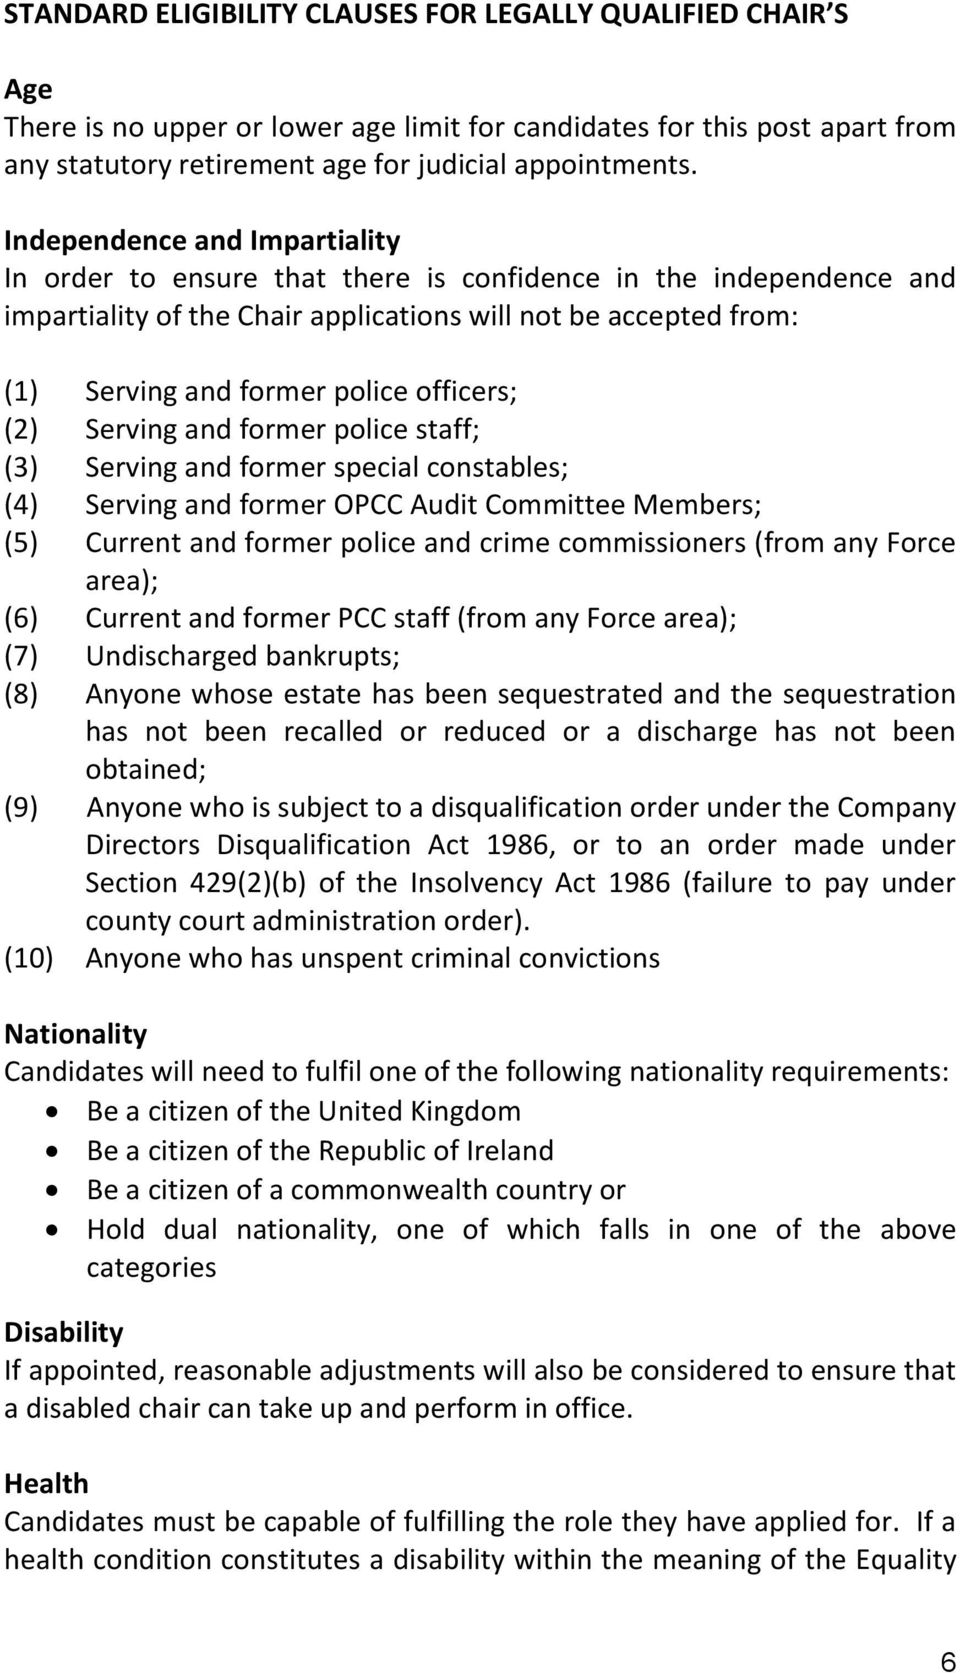 officers; (2) Serving and former police staff; (3) Serving and former special constables; (4) Serving and former OPCC Audit Committee Members; (5) Current and former police and crime commissioners